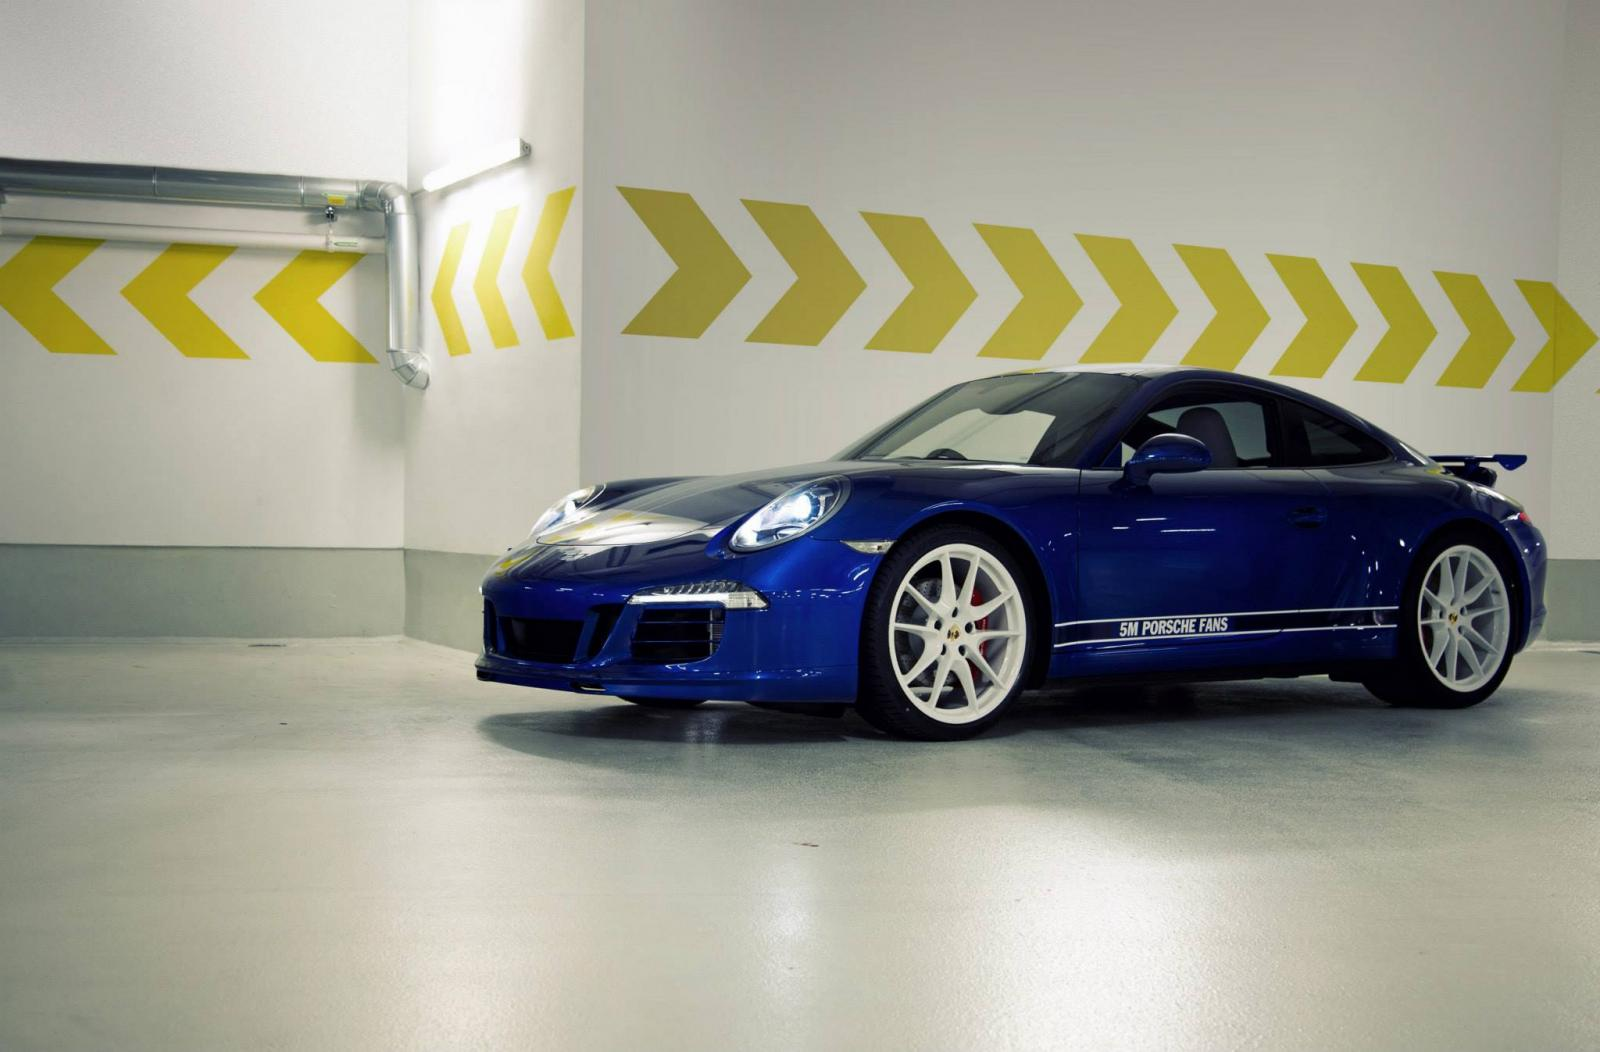 Porsche 911 Carrera 4S built to celebrate 5M fans on Facebook